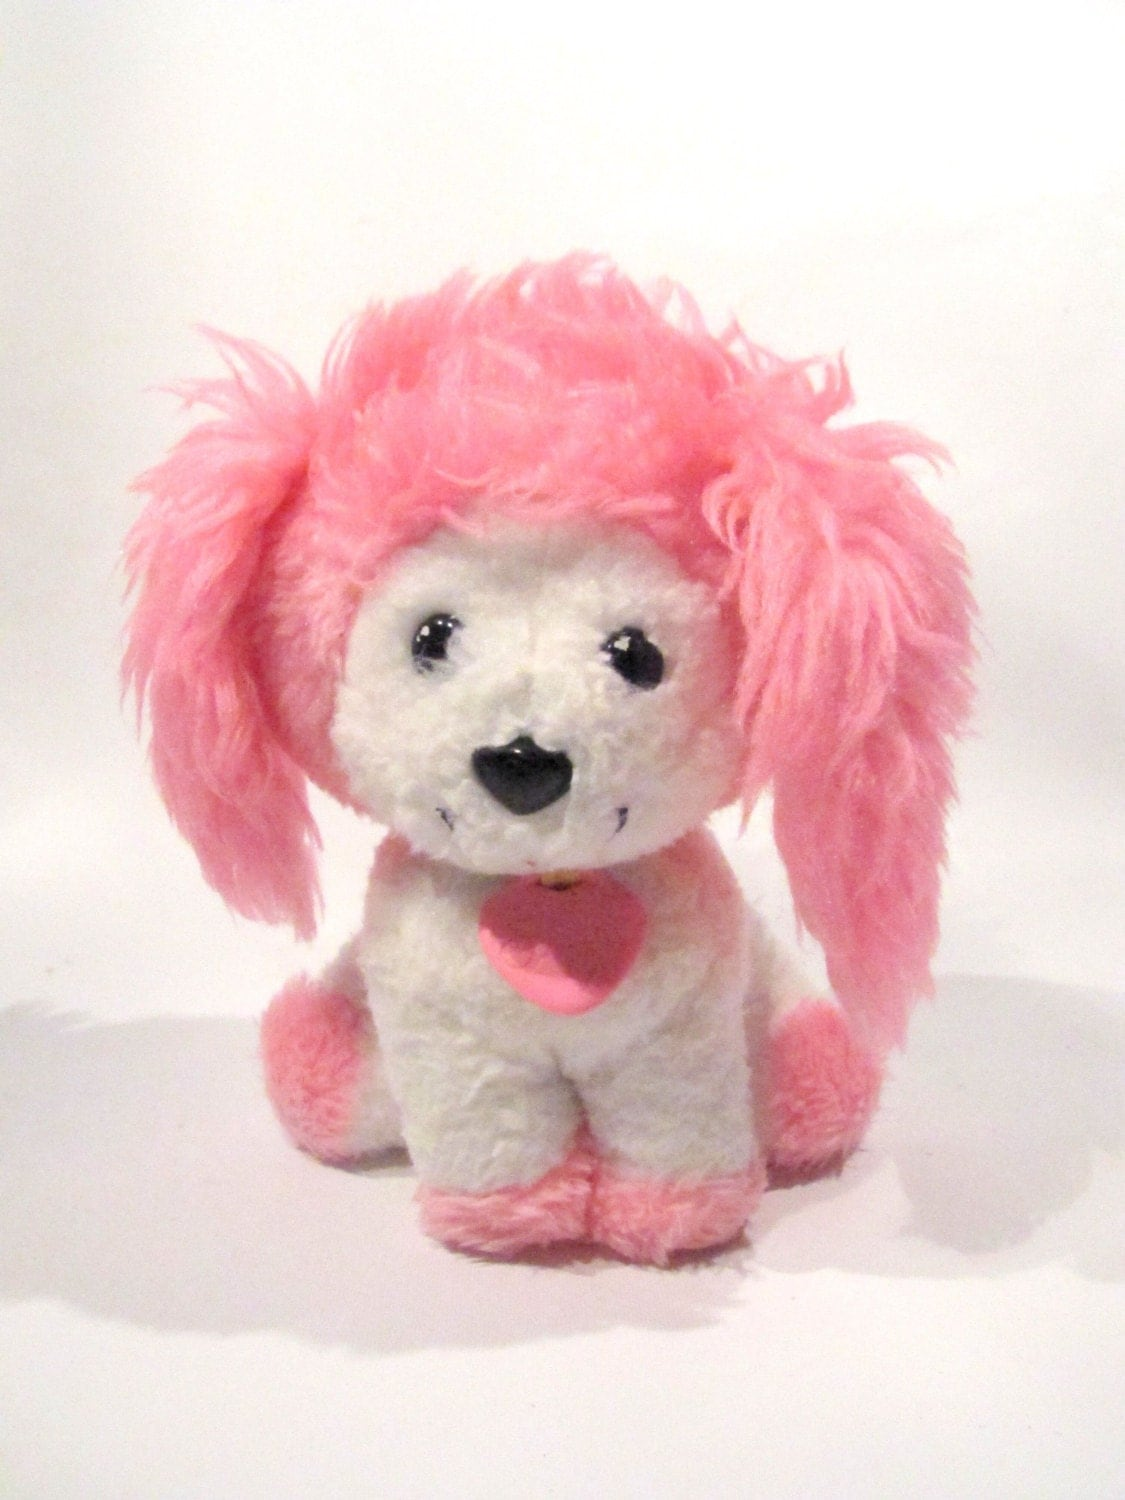 POOCHIE Dog Toy 1982 Mattel 7 inches Plush Stuffed Animal